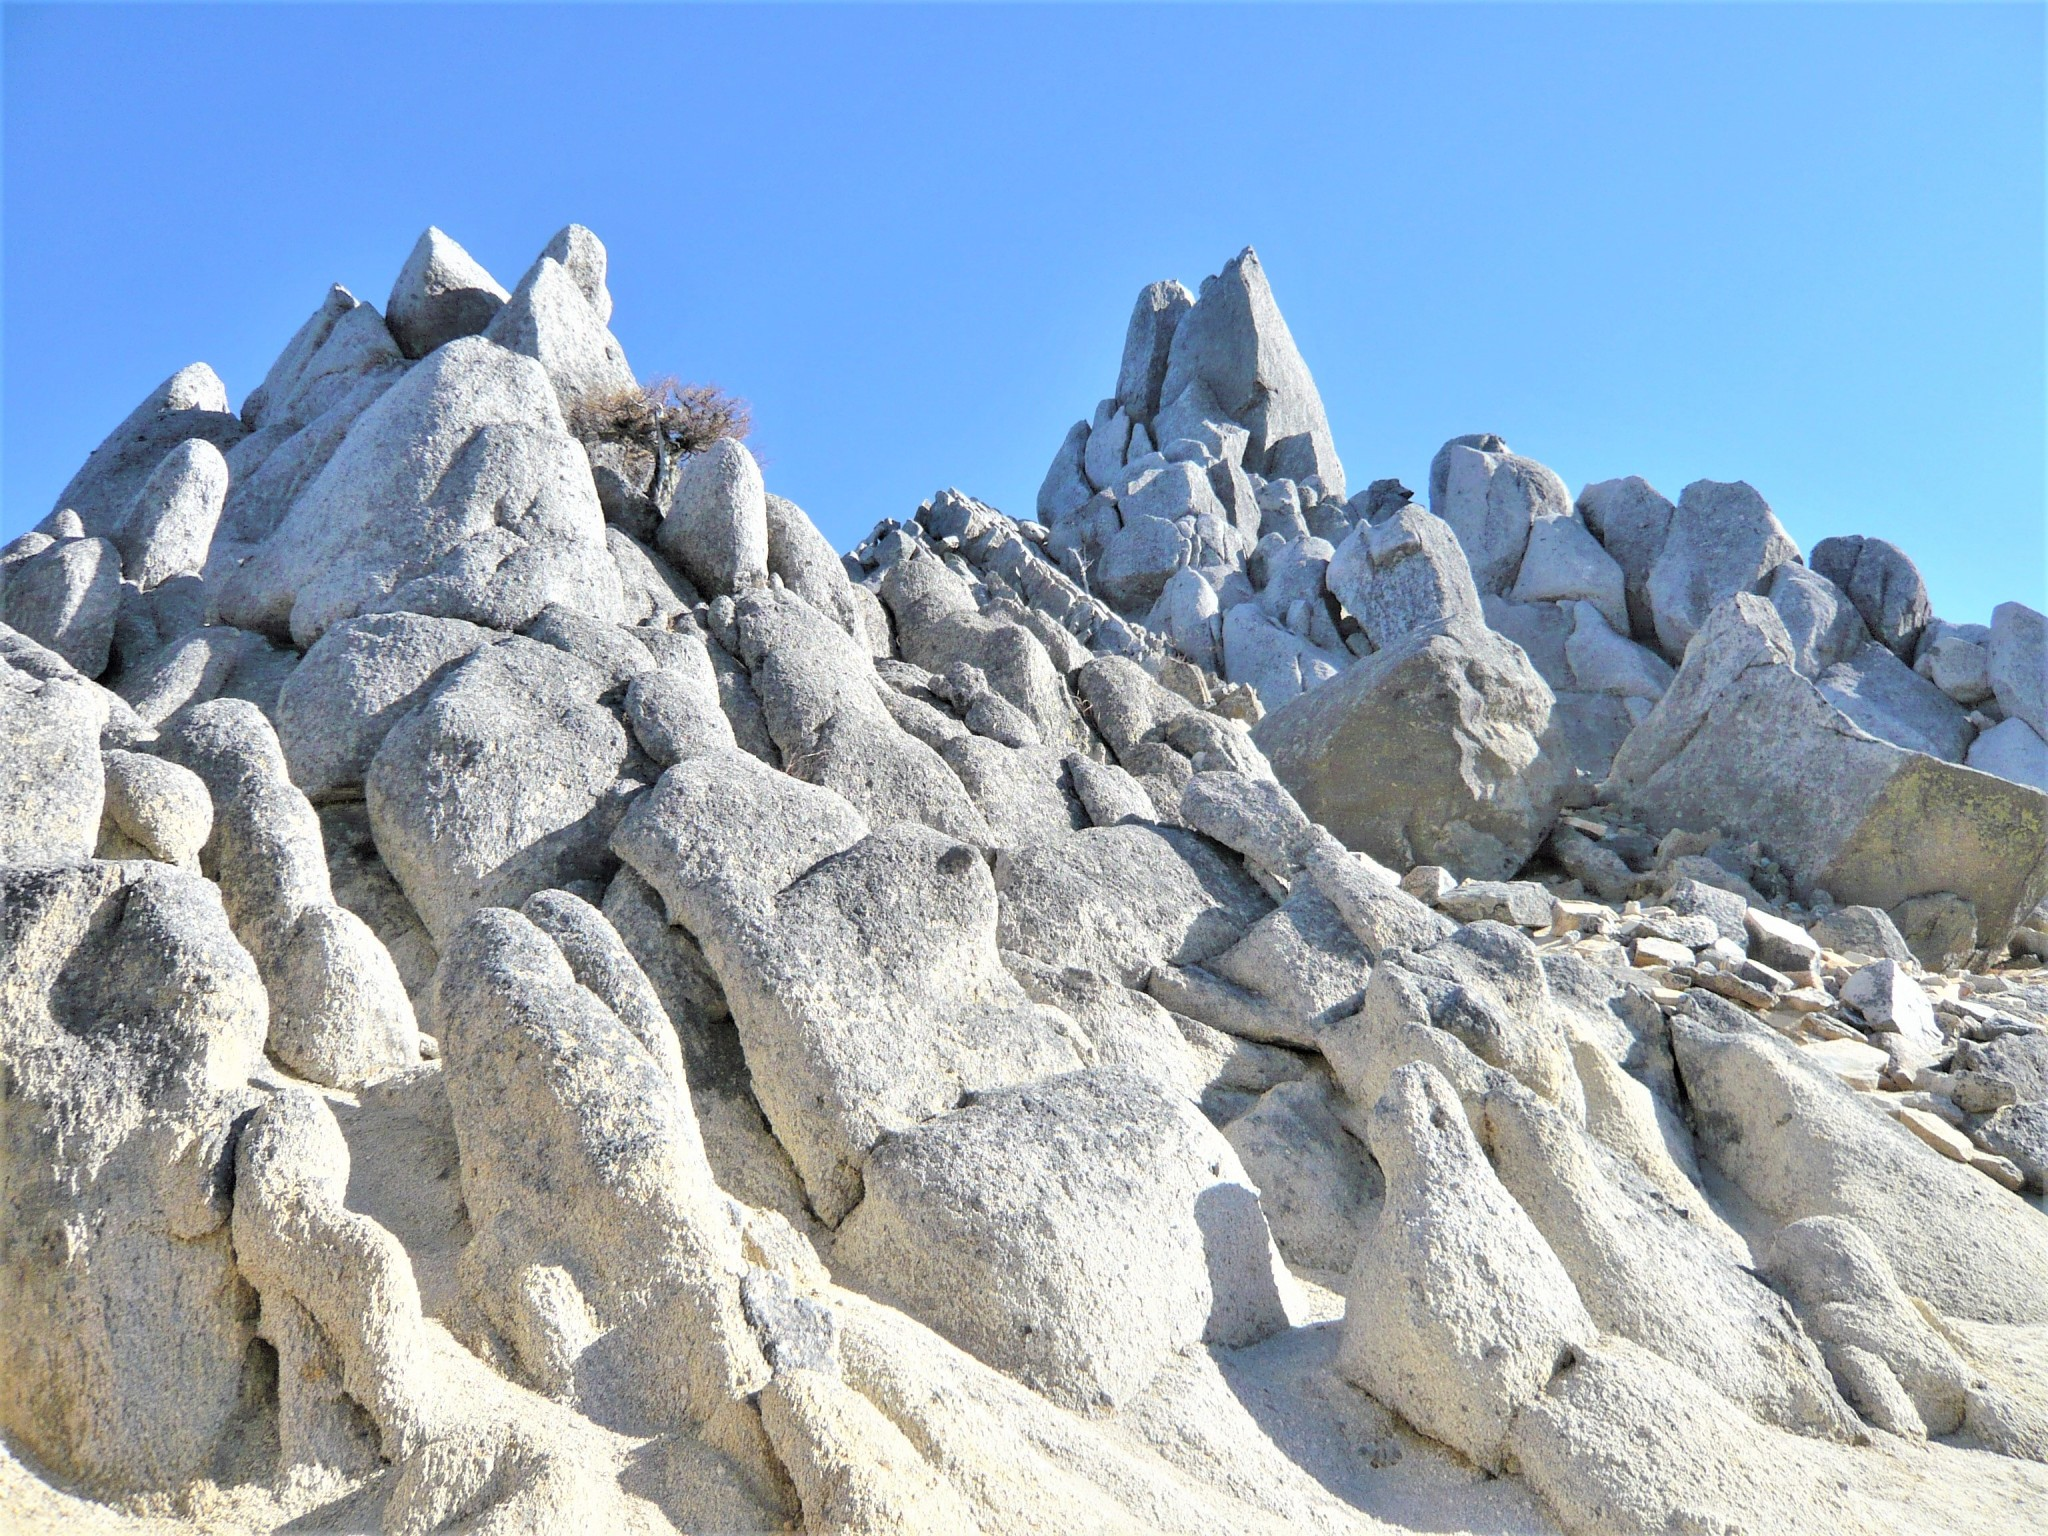 The surreal rock formations of Mount Jizo set against a clear blue sky in the Japan Alps.